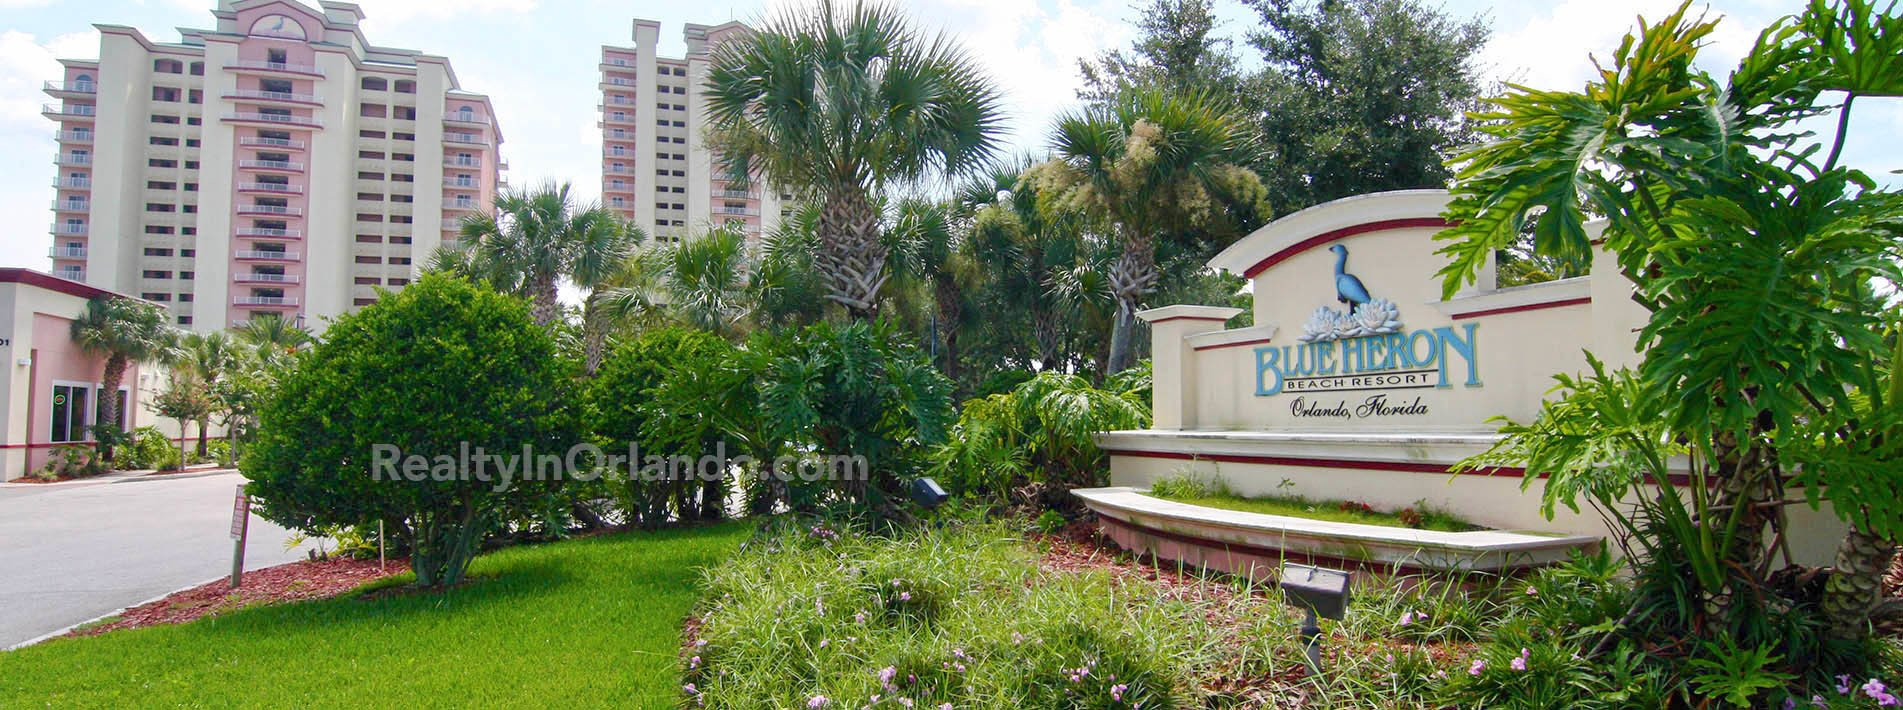 Blue Heron Beach Resort Investment Property